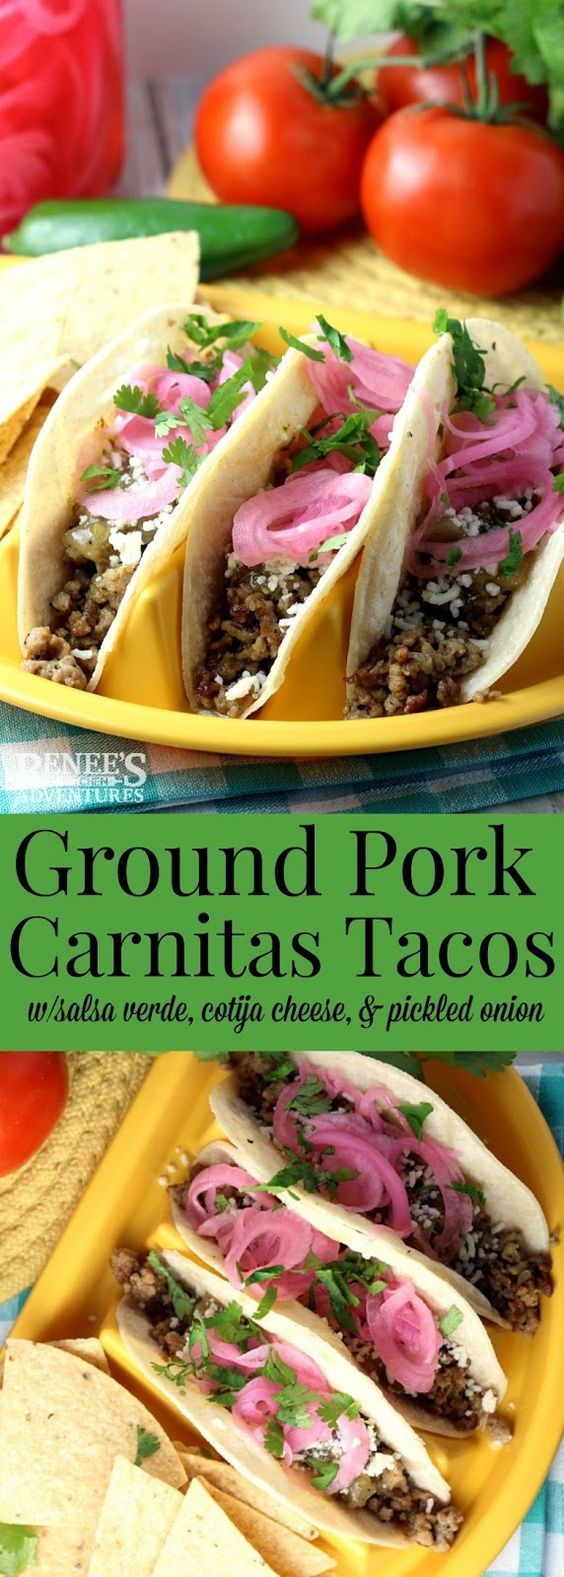 Ground Pork Carnitas Tacos | Renee's Kitchen Adventures - easy recipe made with seasoned ground pork, salsa verde, cotija cheese, cilantro and pickled onions for carnitas in about 30 minutes!  Perfect dinner or lunch recipe to celebrate Cinco de Mayo!